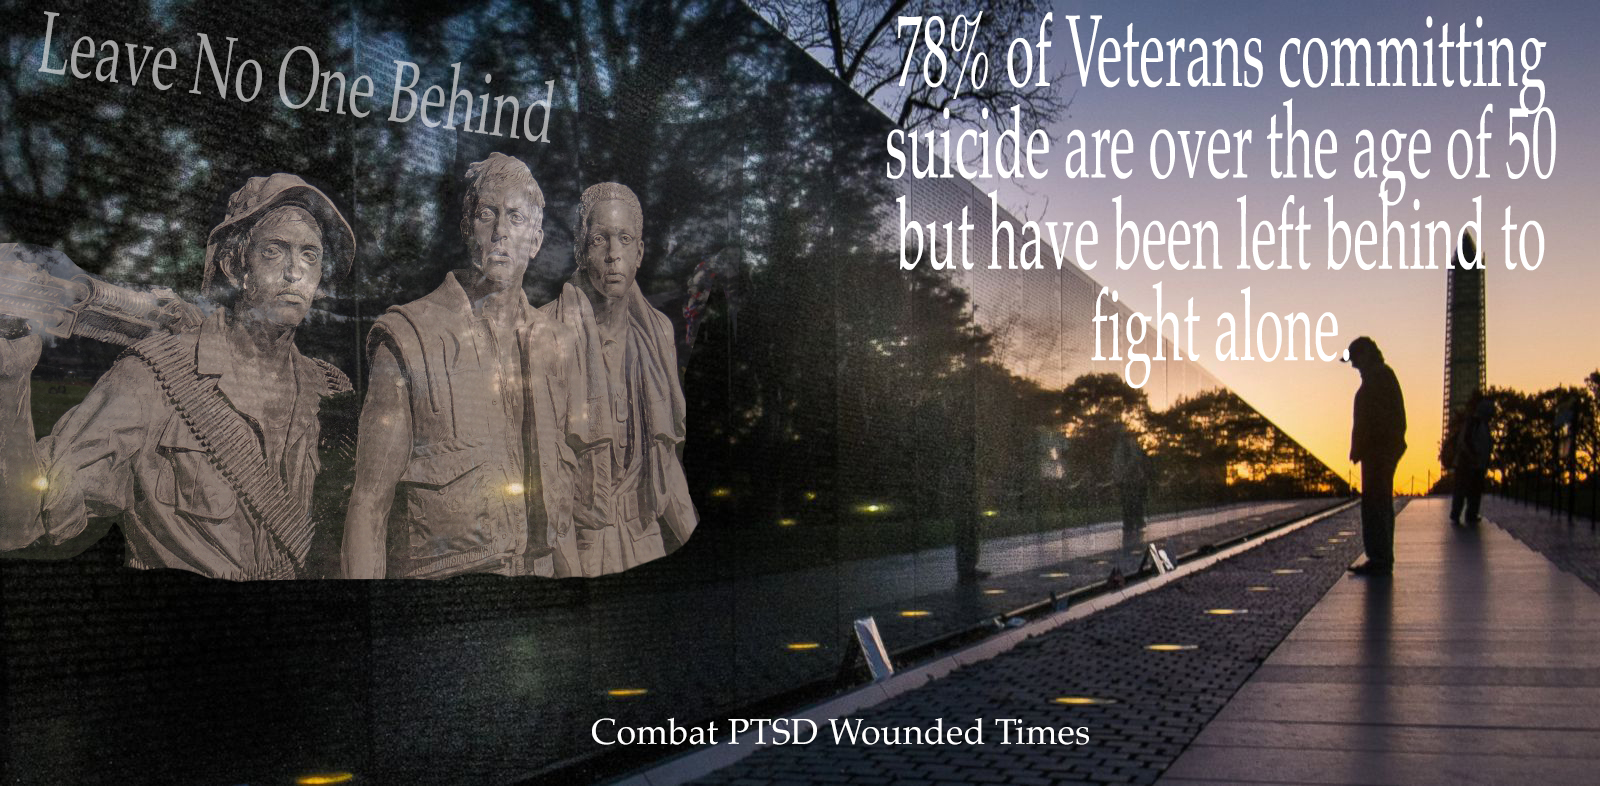 How much do psychiatrists(in private sector) who are specialized in combat disorders such as PTSD charge?